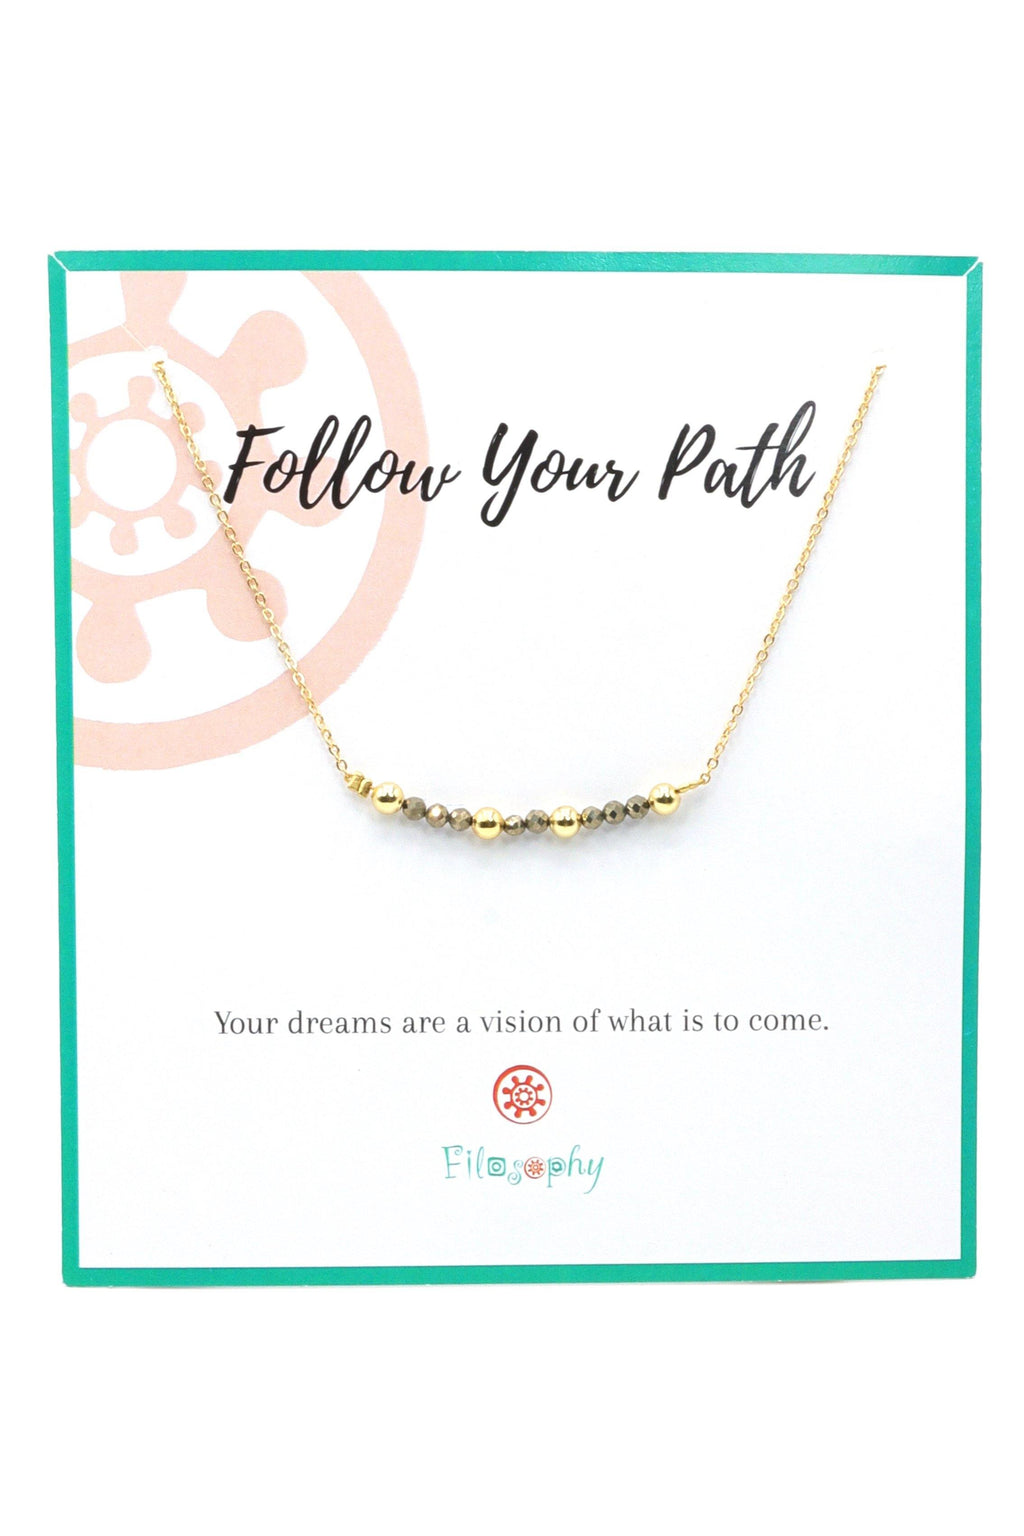 This is a pyrite bar necklace, with 18k gold plated beads on a gold plated chain. Pyrite is an energetic stone, wonderful to help you feel vital and confident to accomplish your goals. This gemstone bar necklace is perfect for layering with other necklaces.